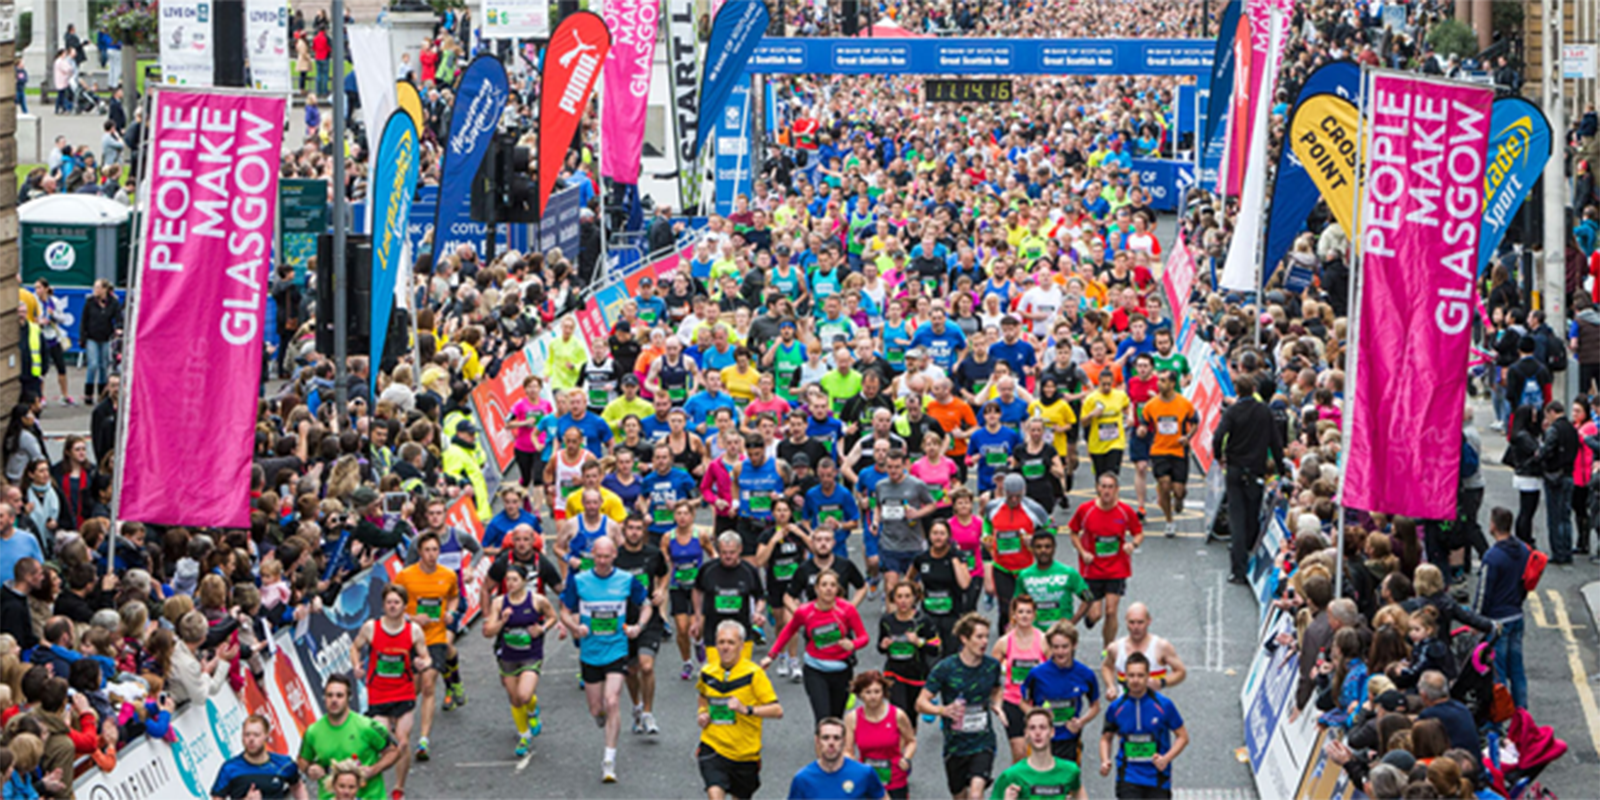 crowd of runners at the Scottish 10k